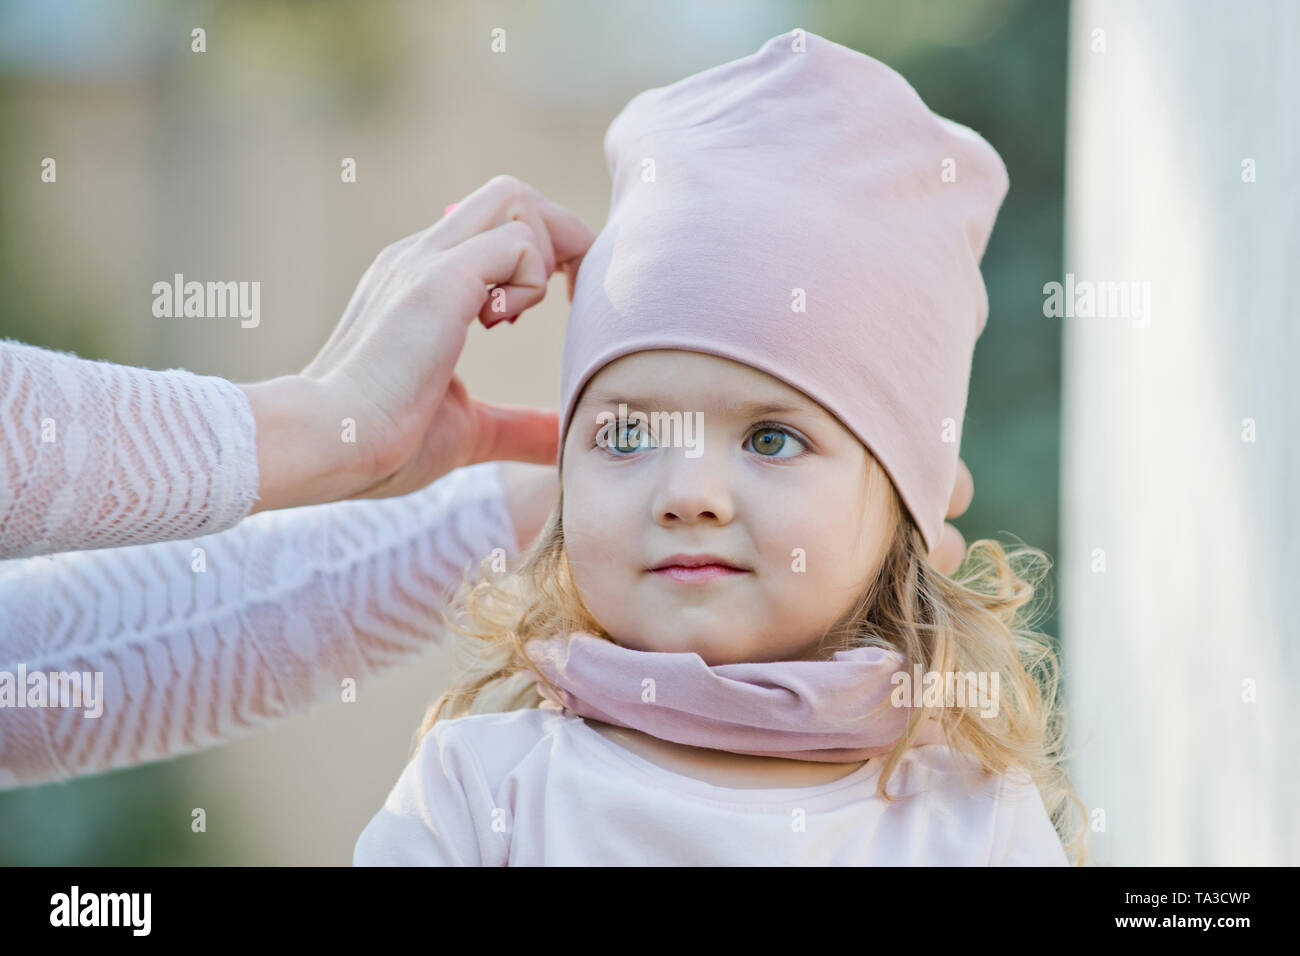 d00ad1b9 Girl get hat put on head by female hands Stock Photo: 247167698 - Alamy